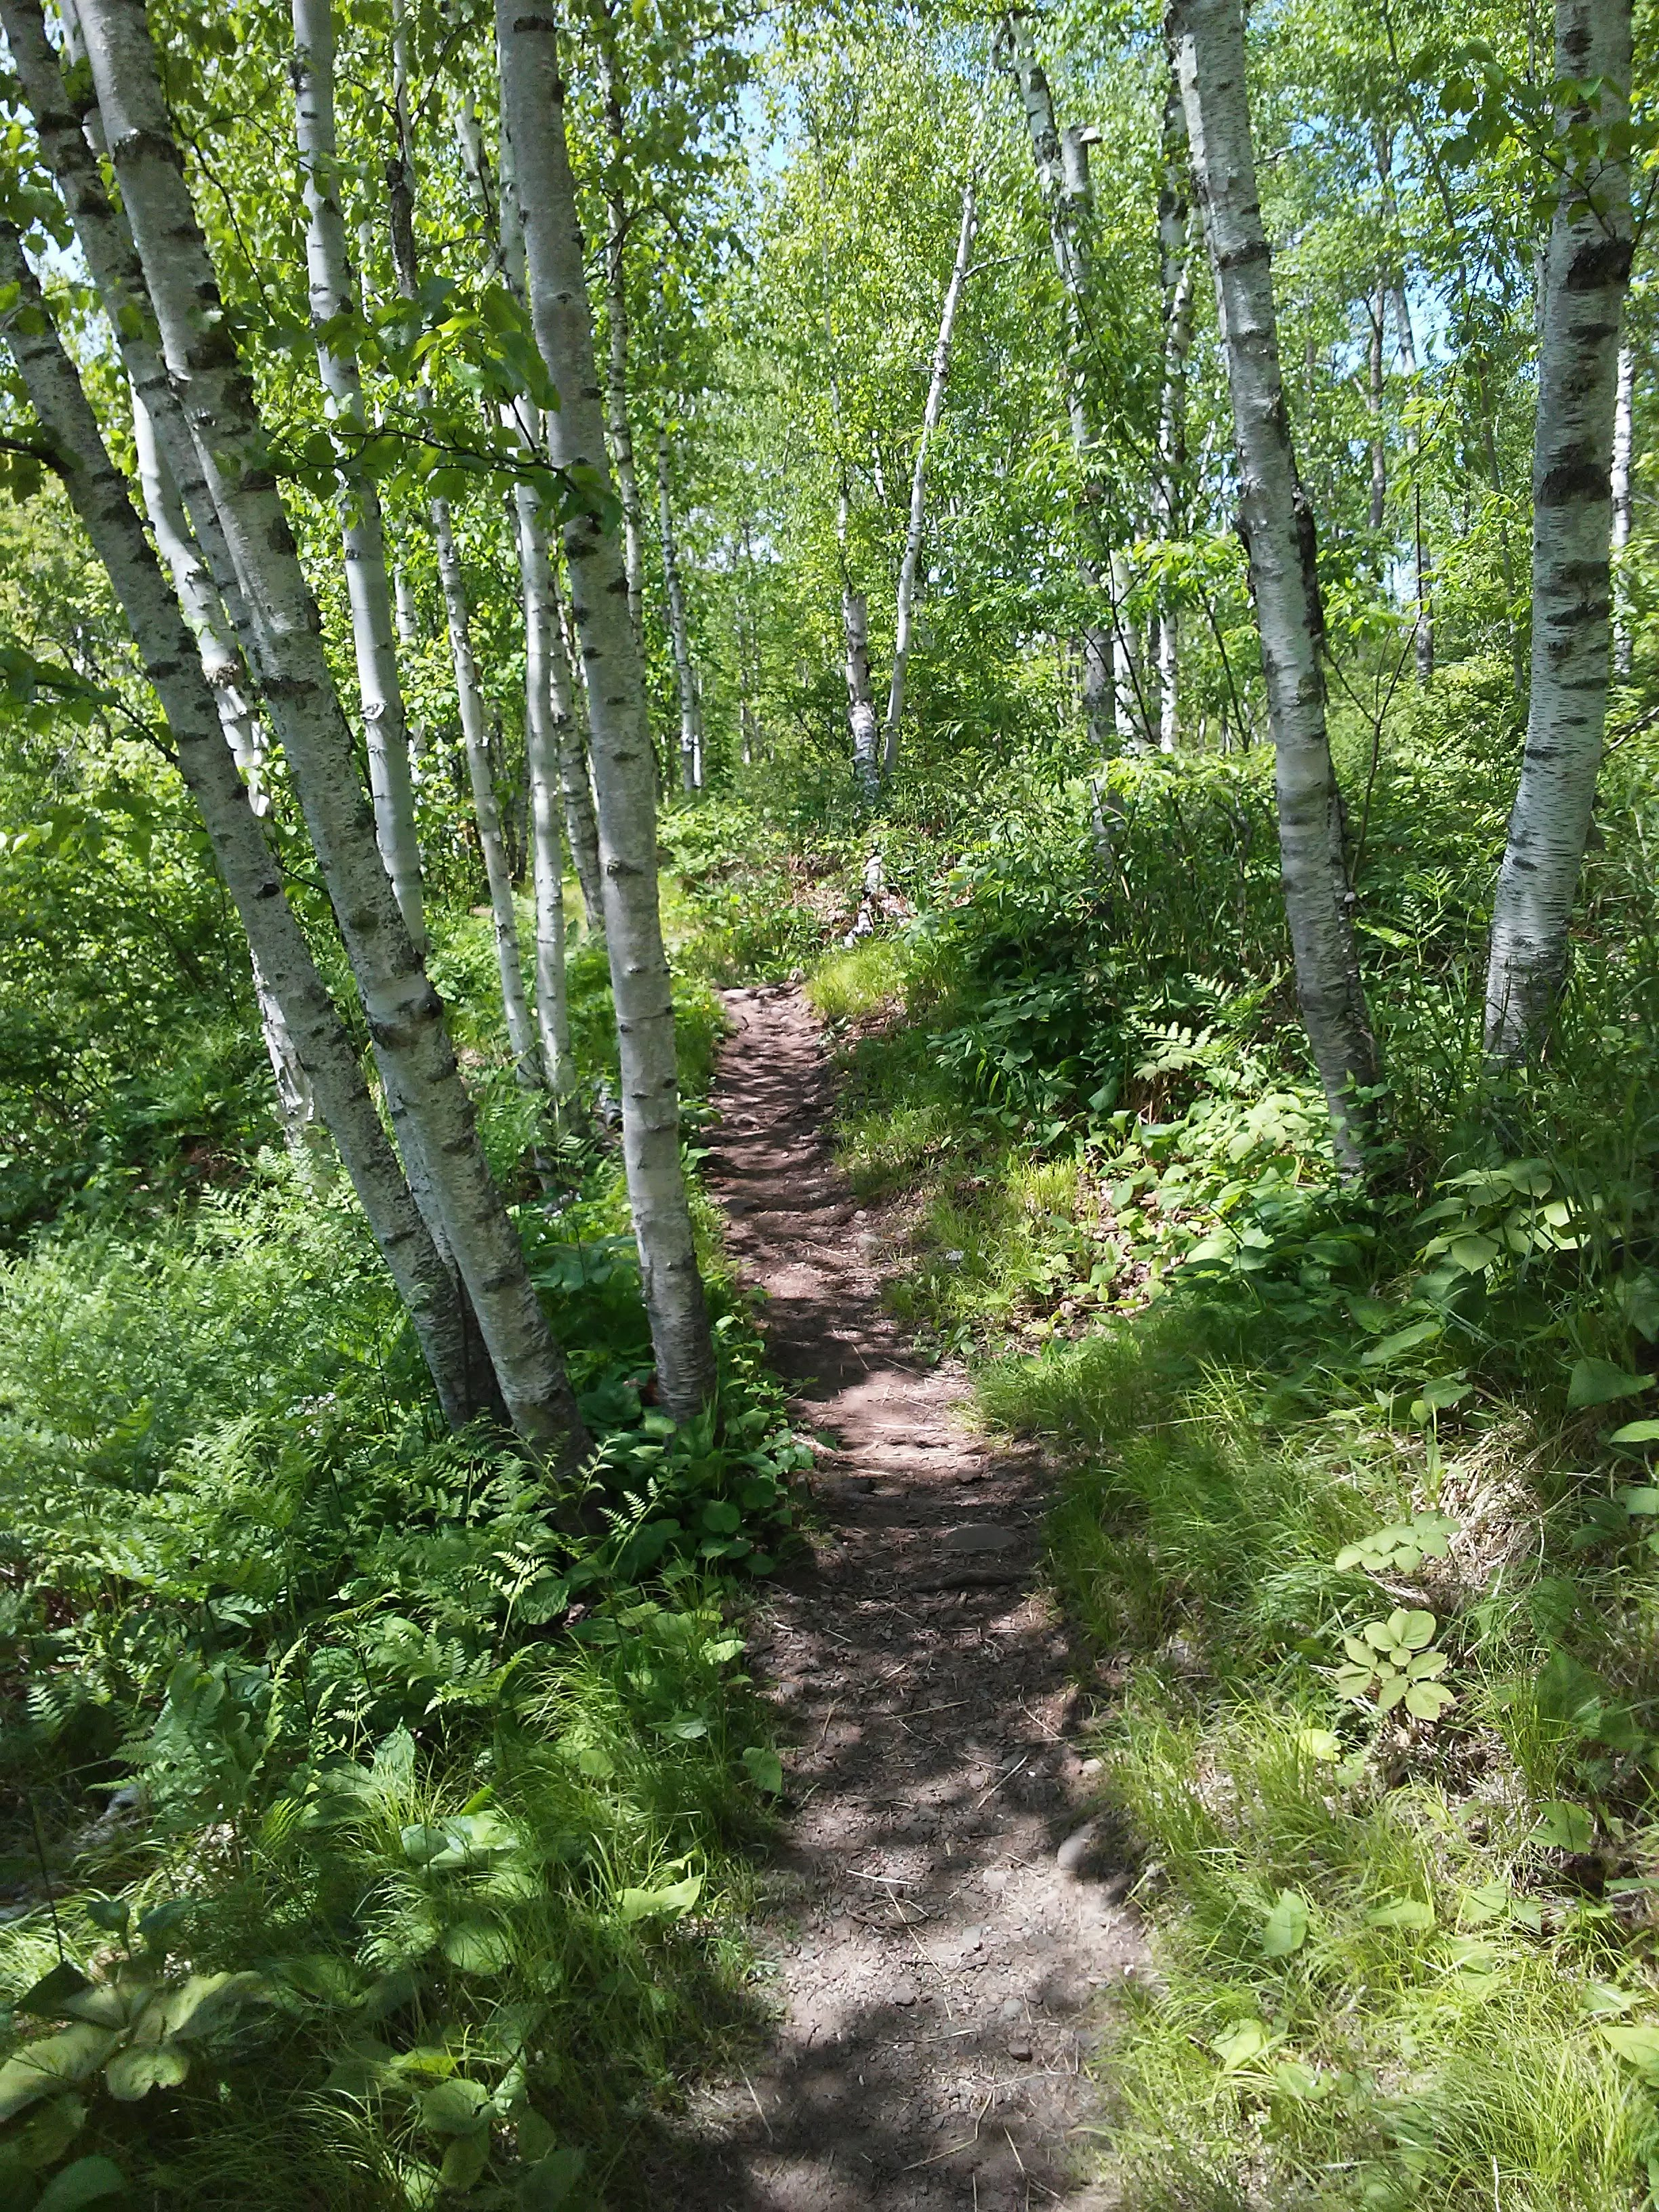 birch trees along a dirt path